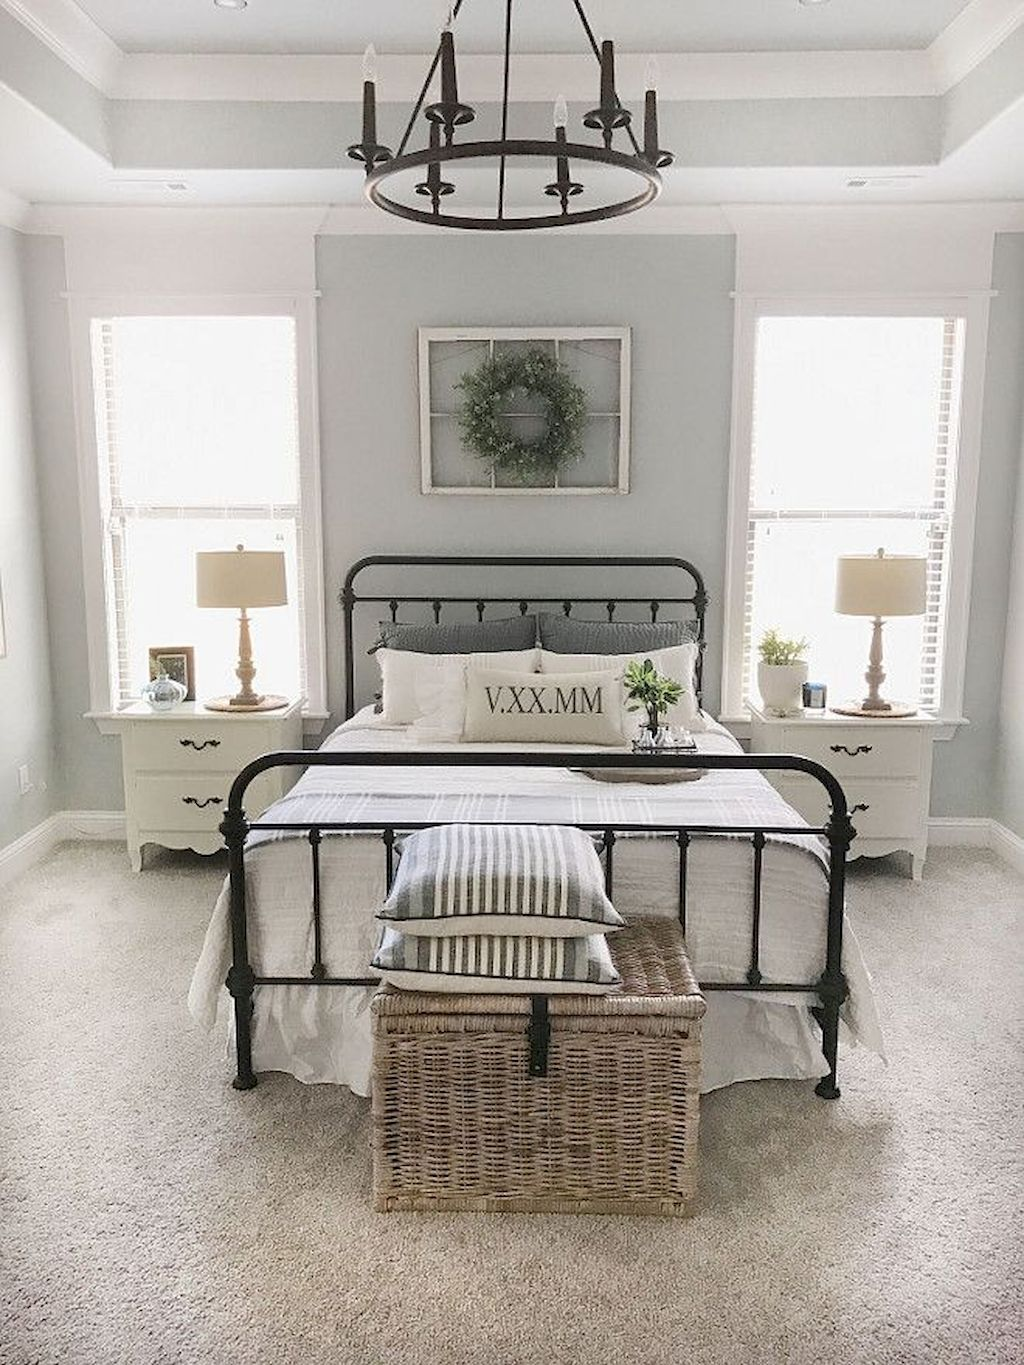 Best 61 Beautiful Farmhouse Master Bedroom Ideas In 2020 Home 400 x 300